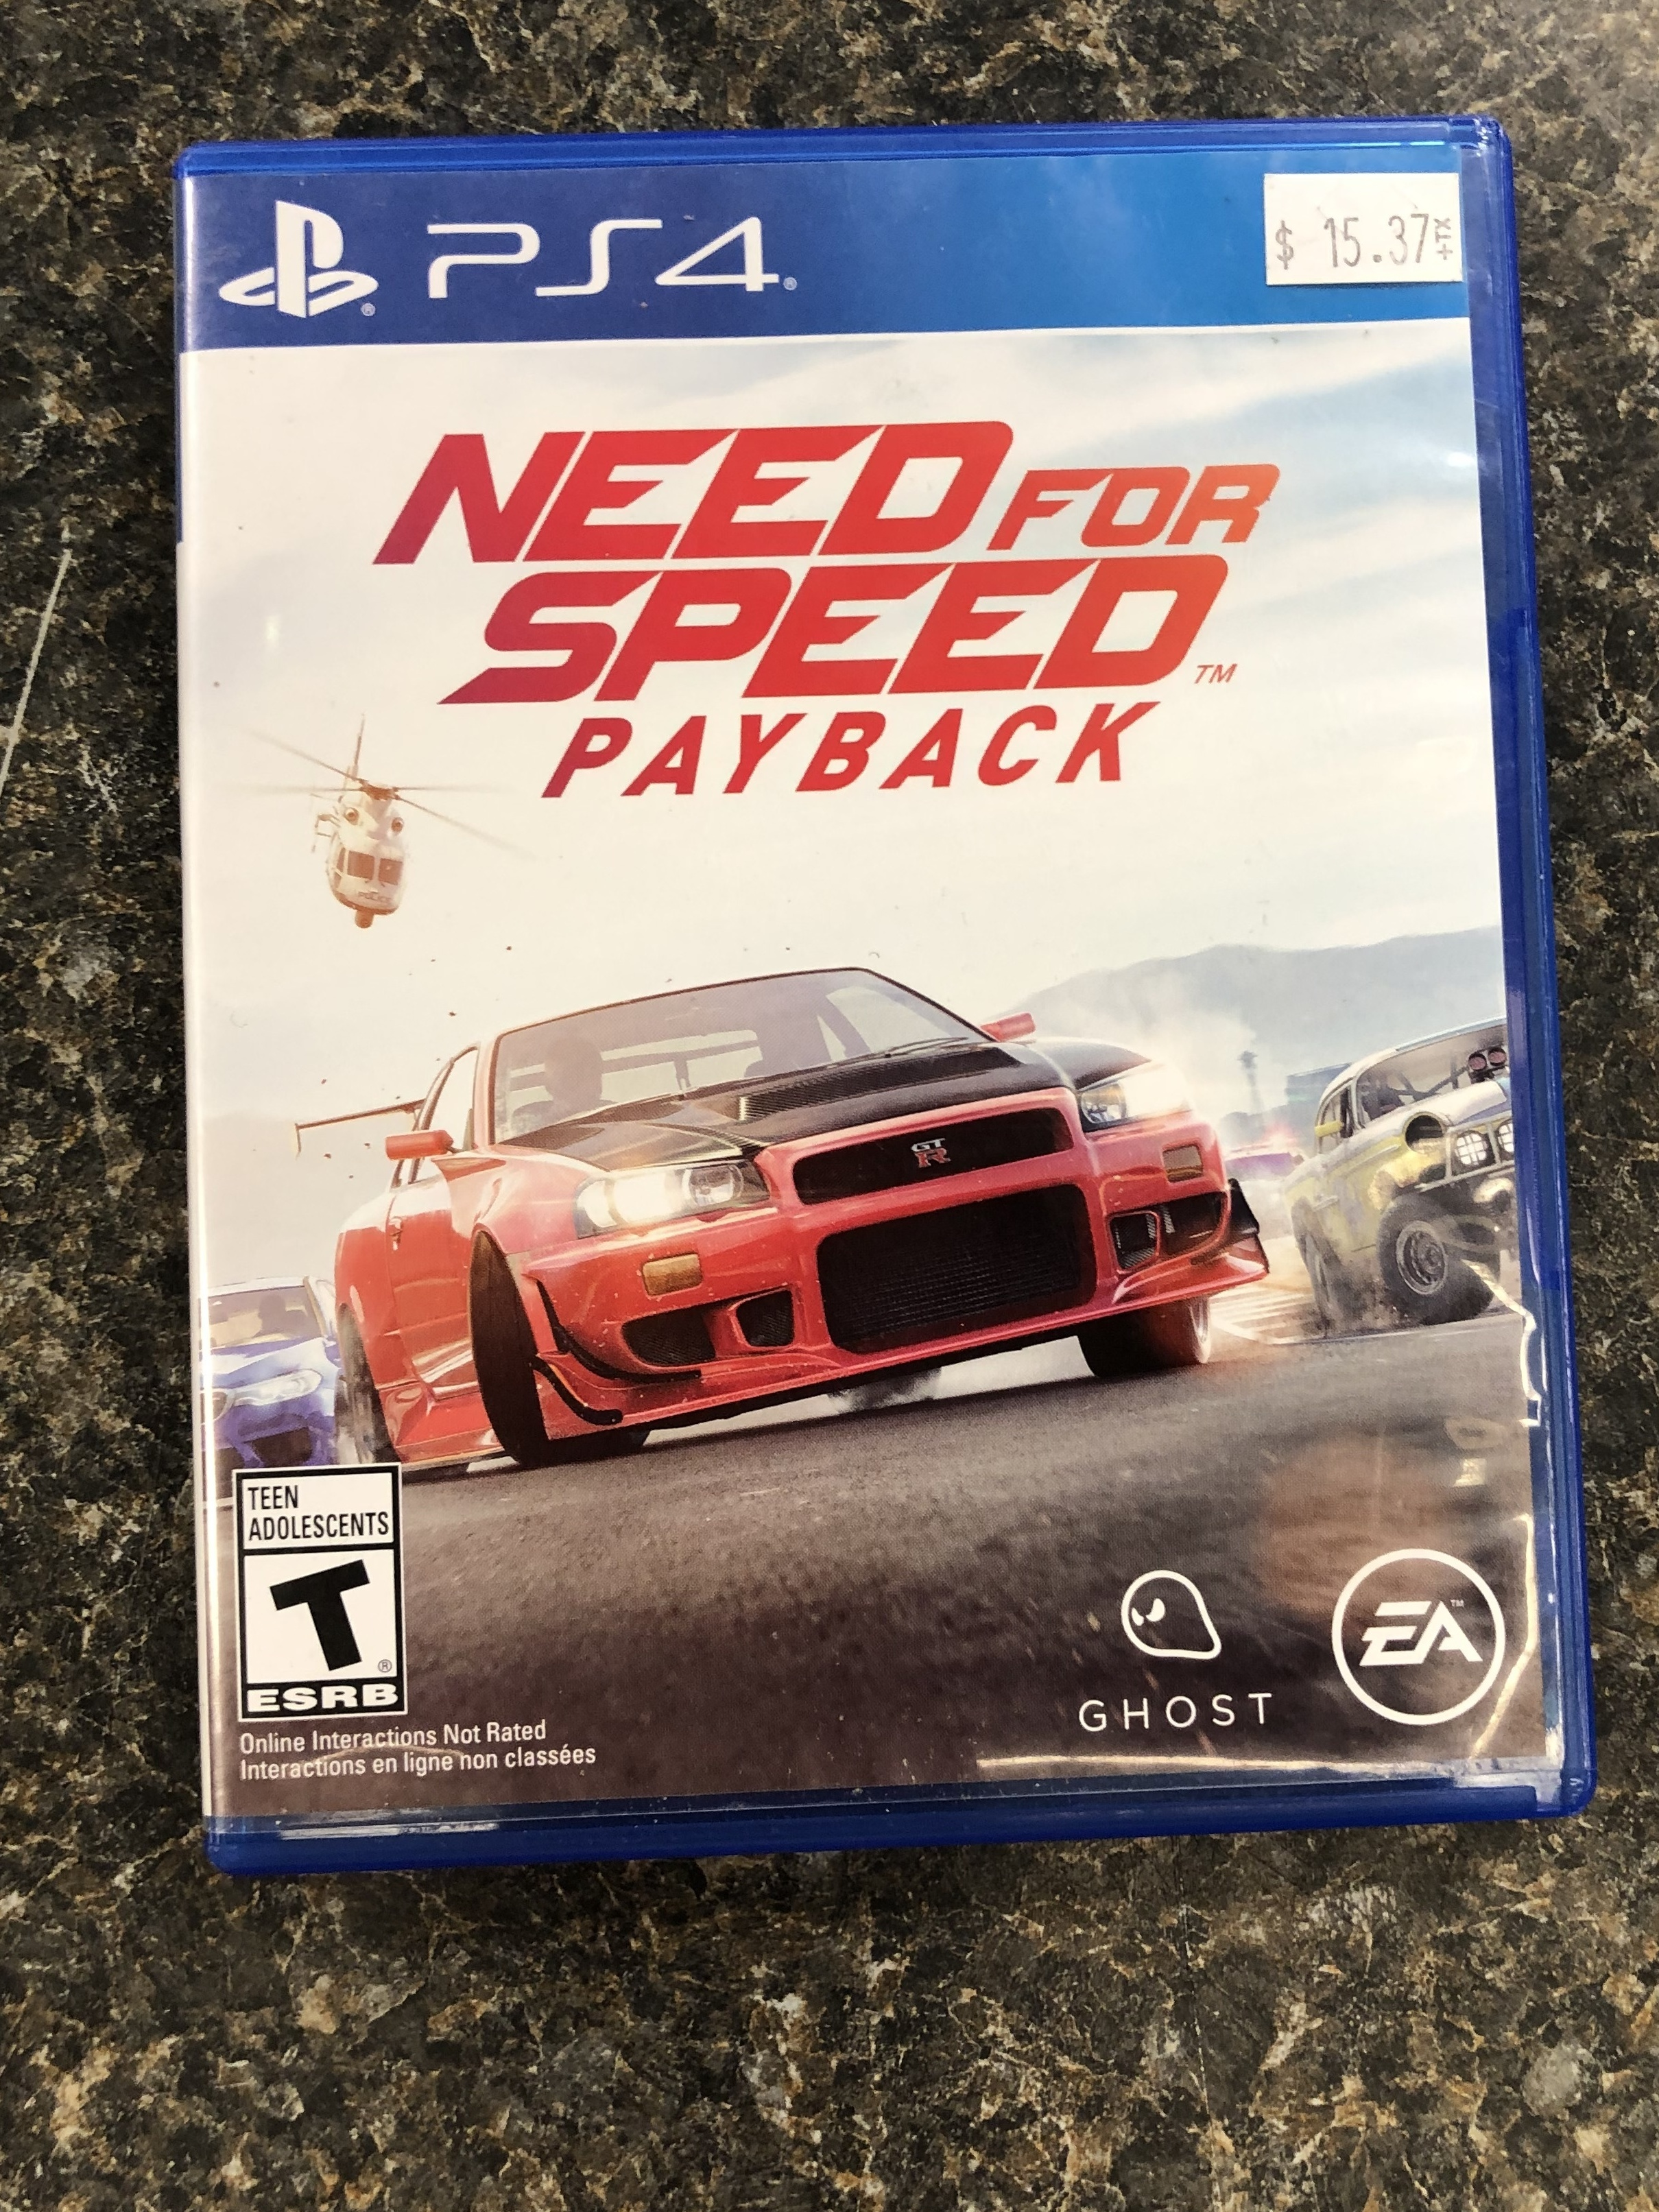 GAMES: PS4 GAME - NEED FOR SPEED PAYBACK